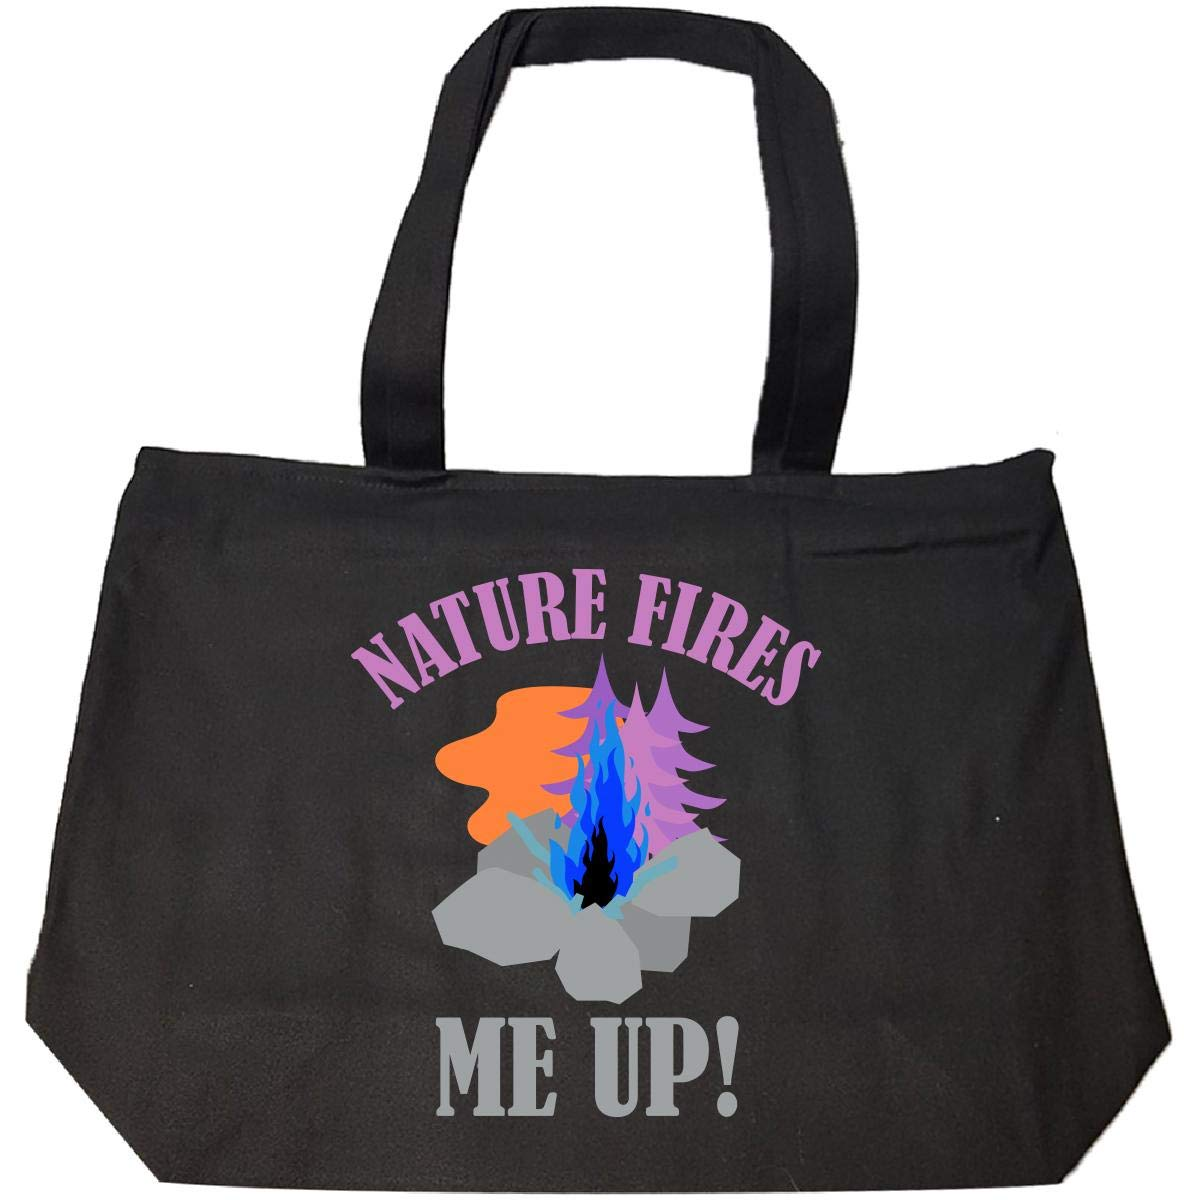 3 Nature Fires Me Up Tote Bag With Zip